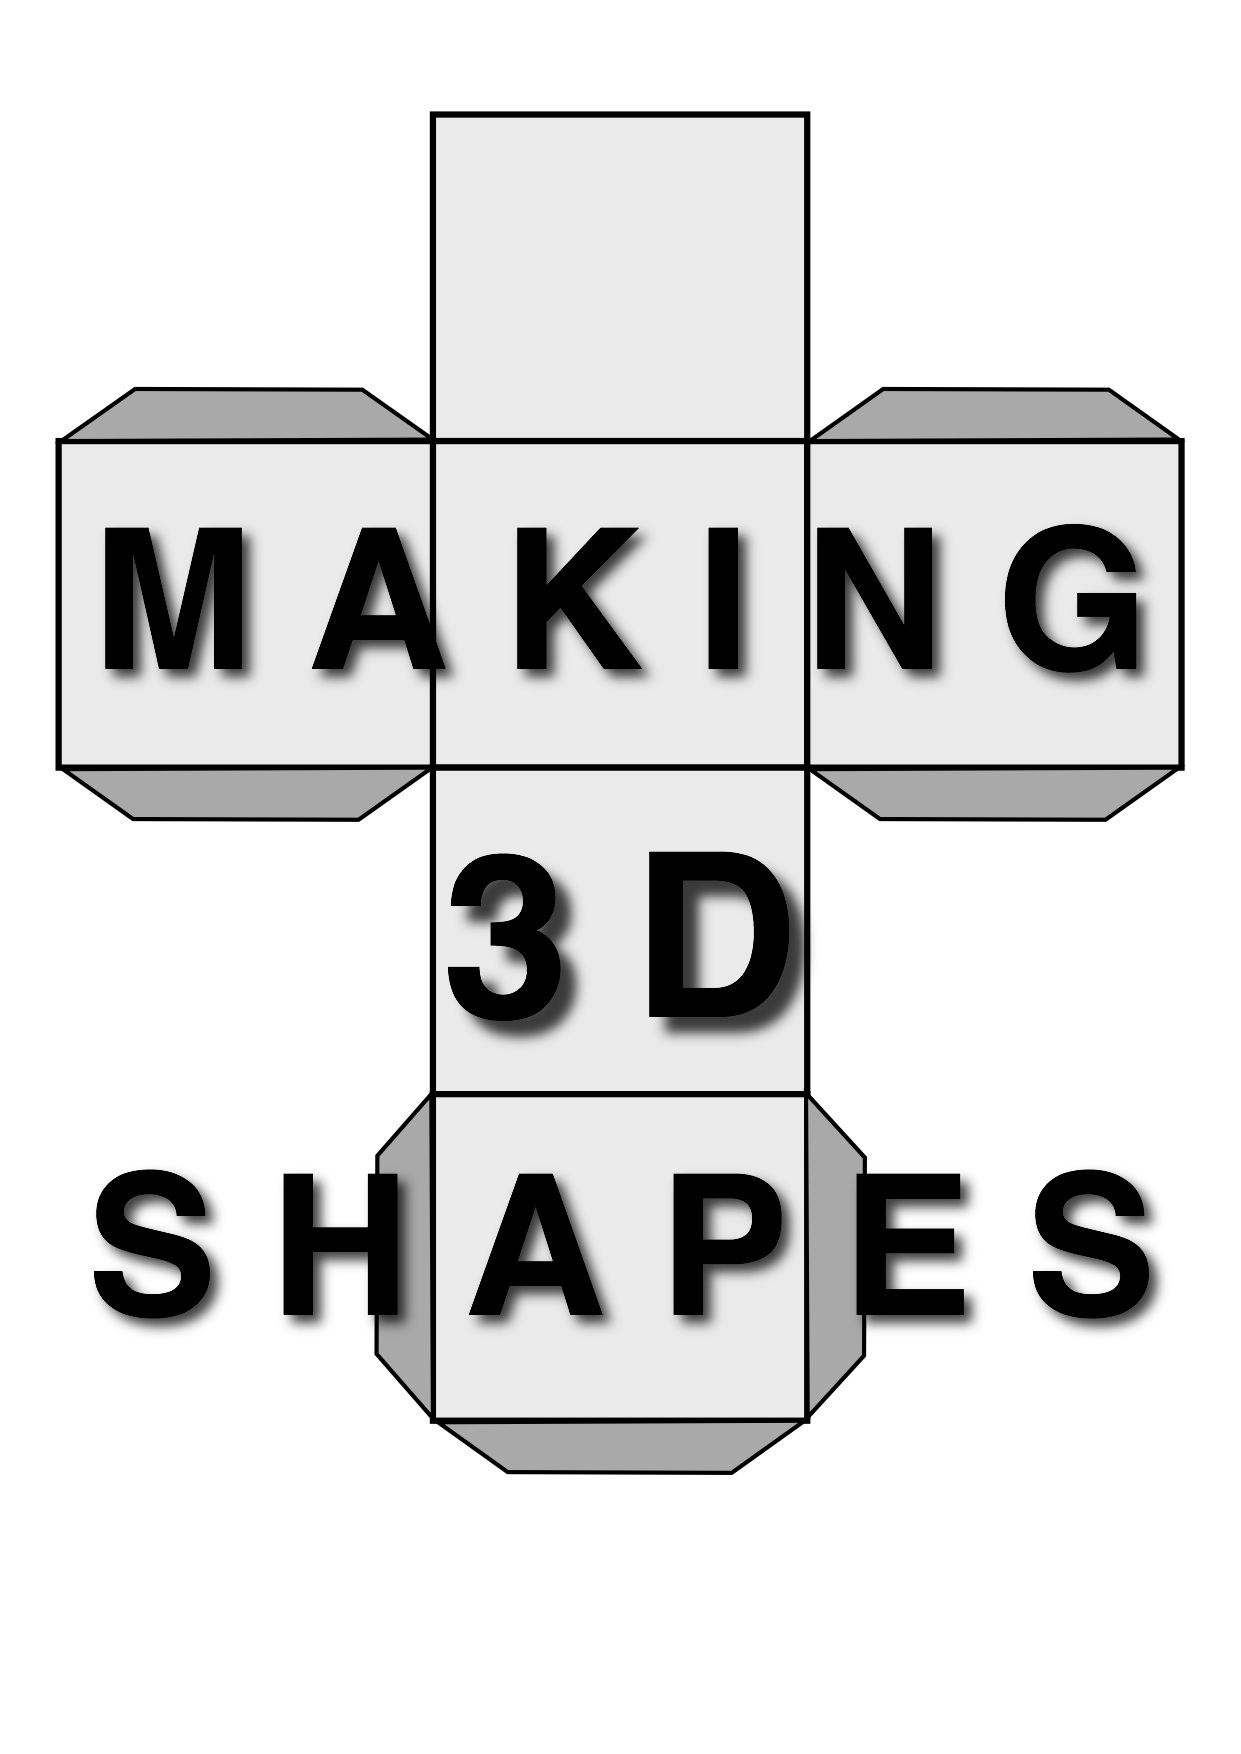 2d And 3d Shapes Worksheet Grad 3